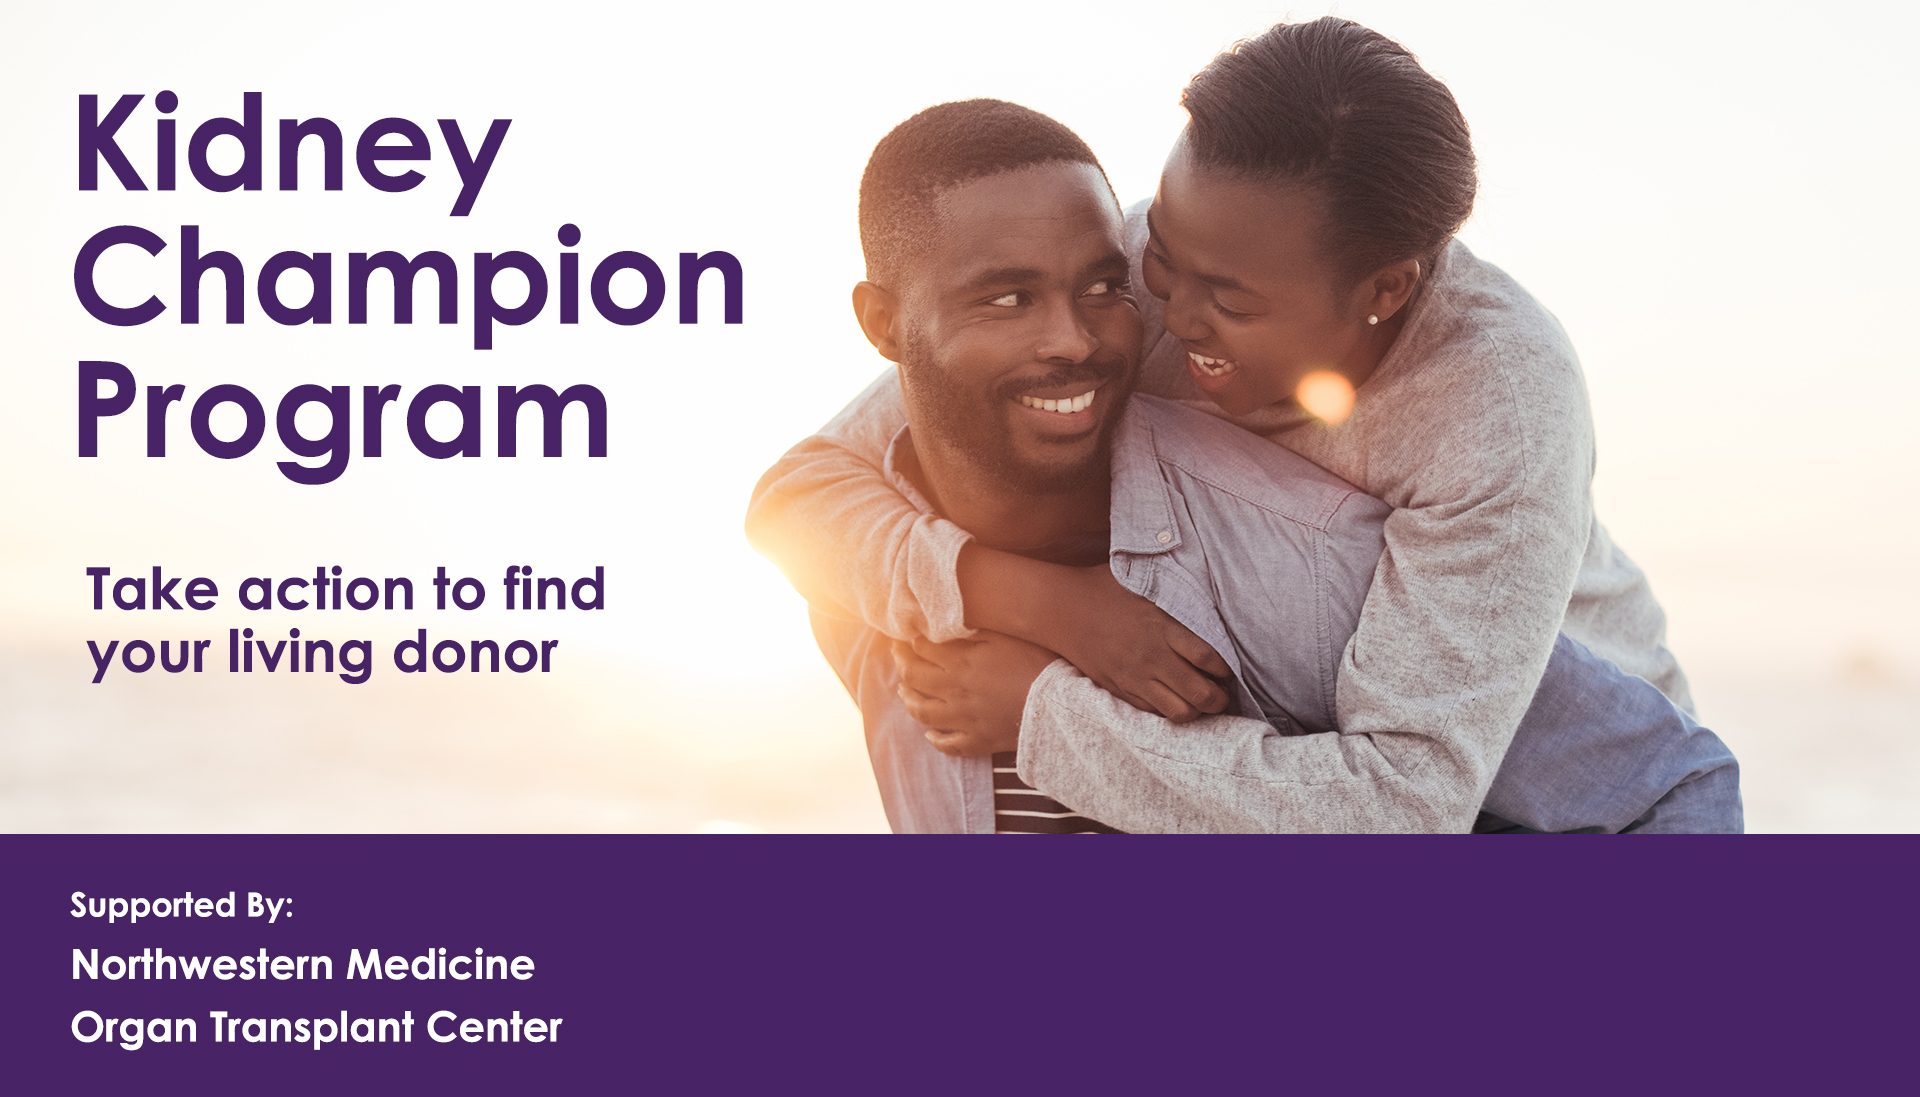 Kidney Champion Program